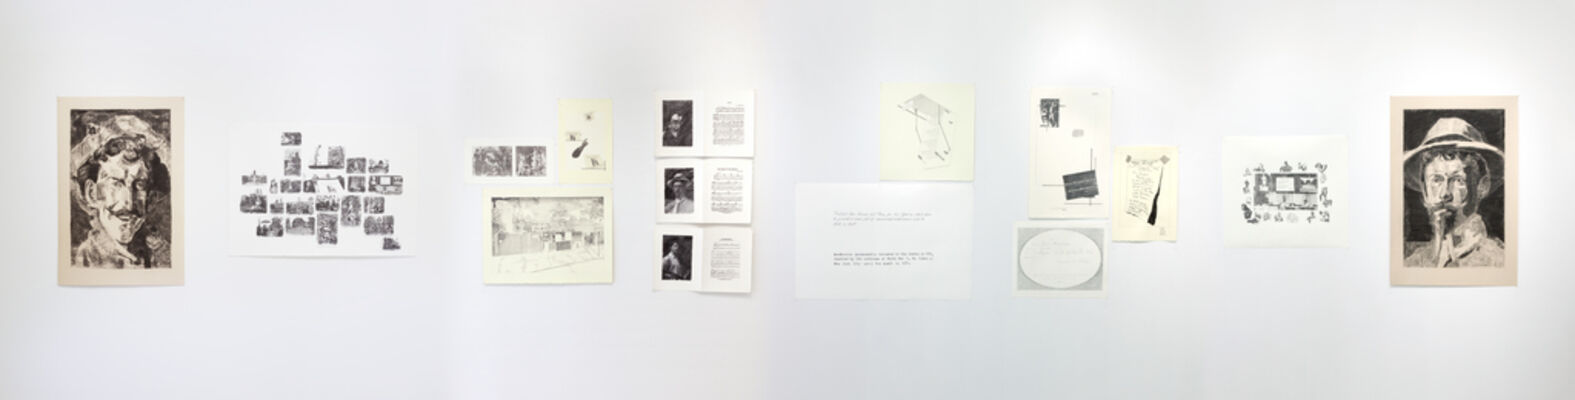 Laura Jasek: Have a Heart, installation view